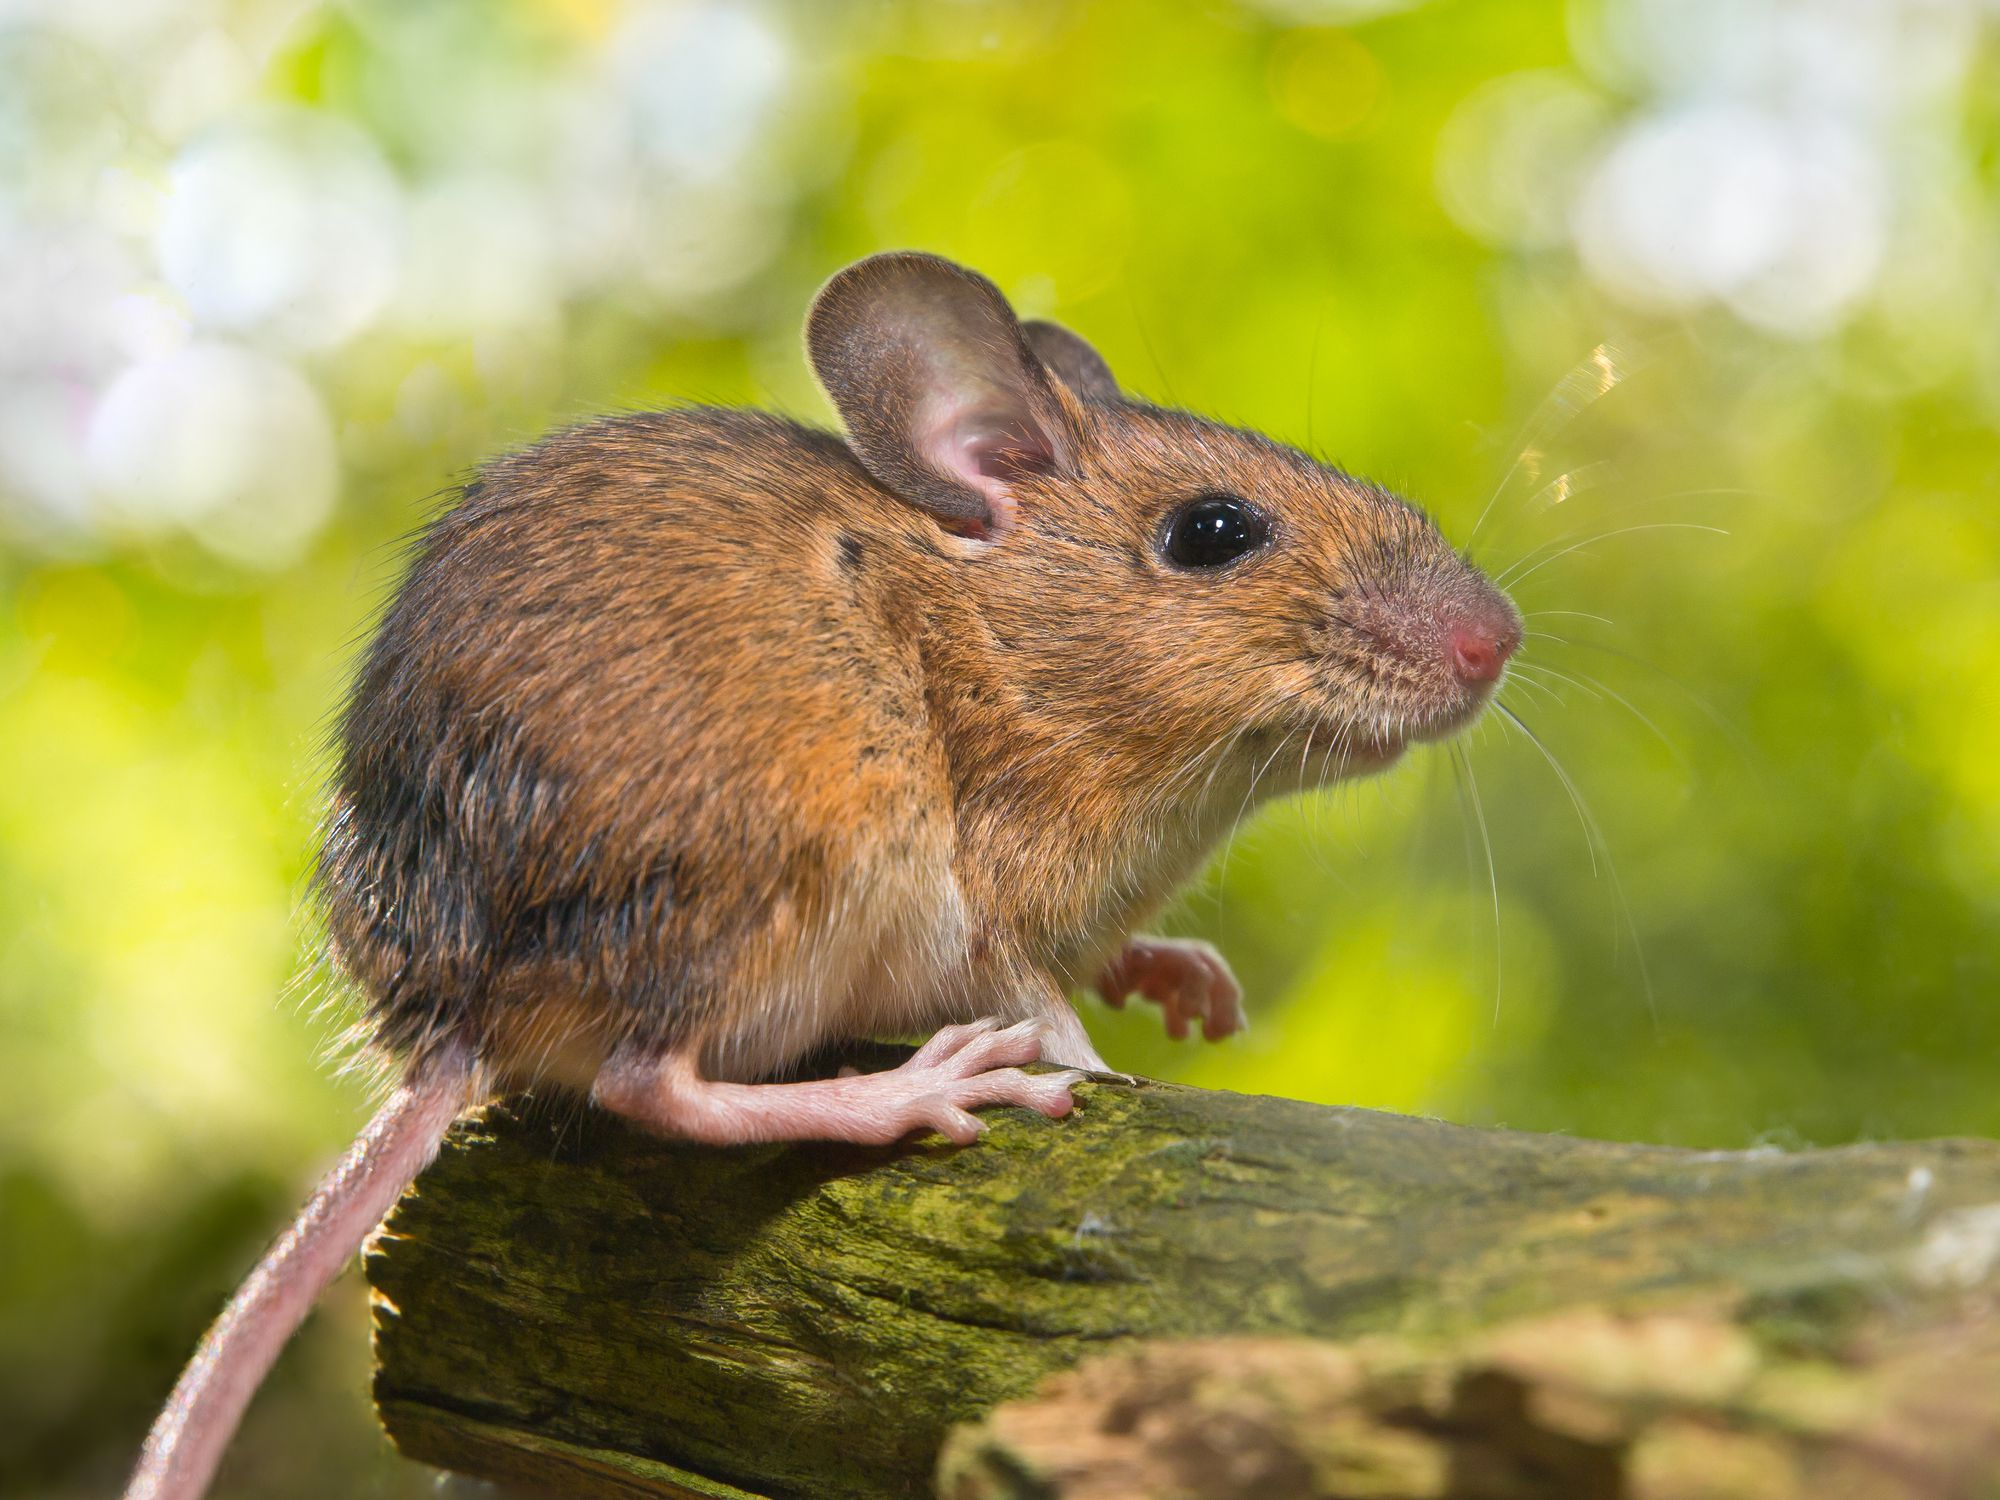 a field mouse sitting on the ground